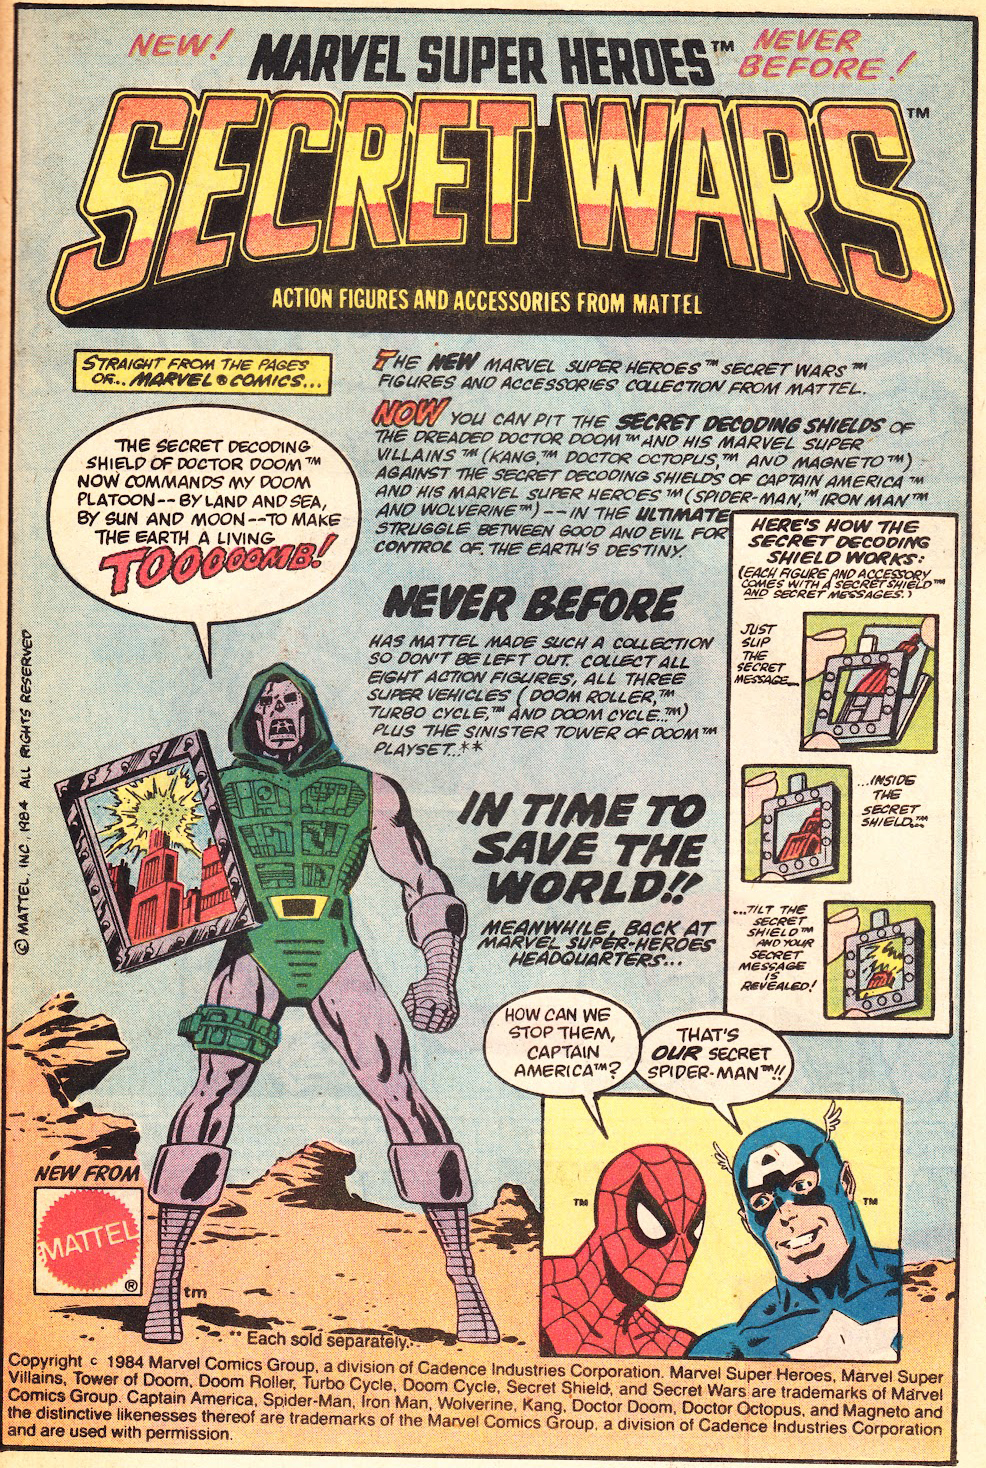 secret-wars-toys-ad